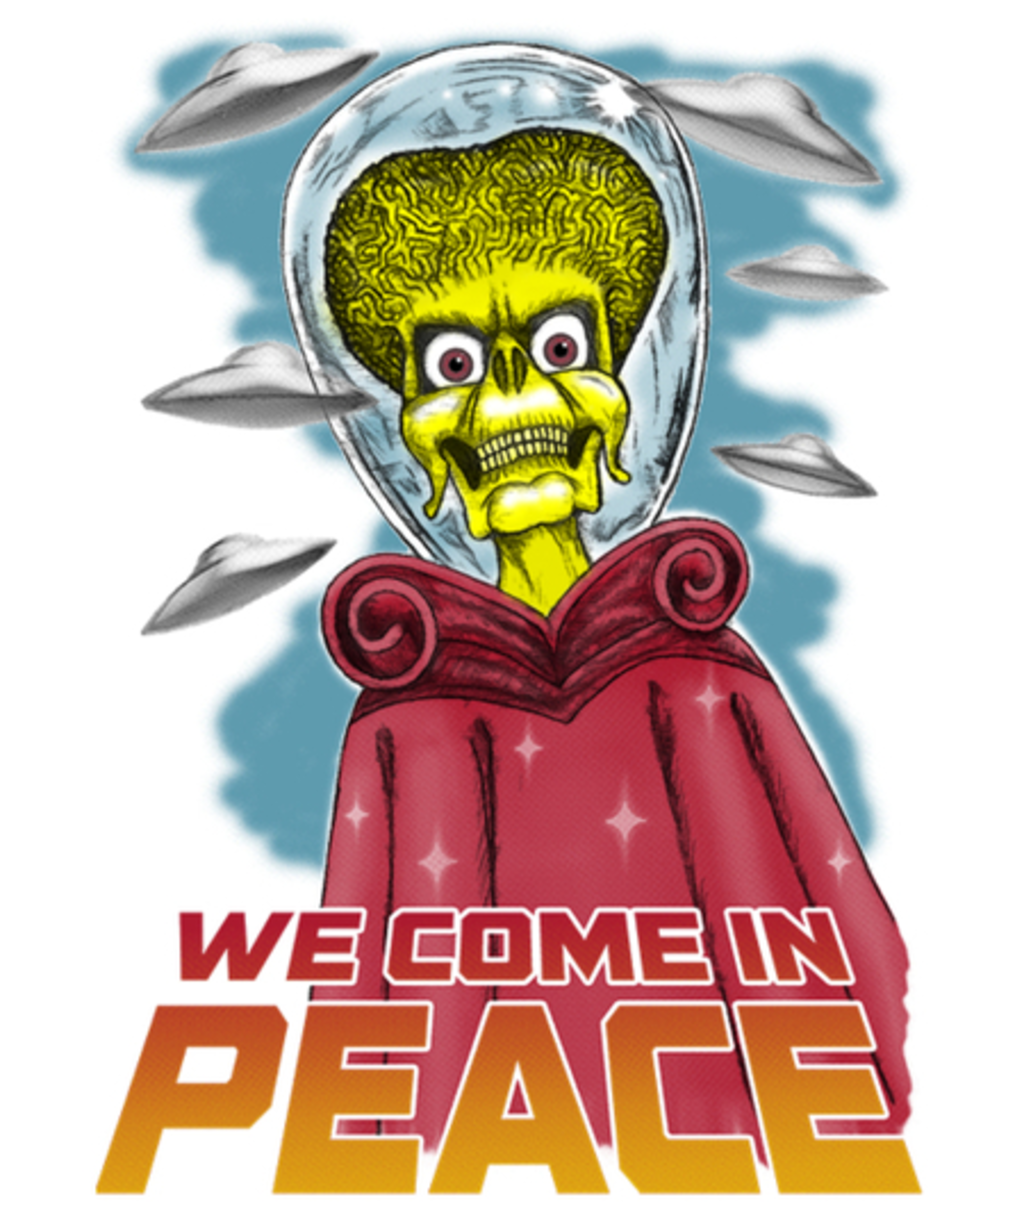 Qwertee: We Come in Peace